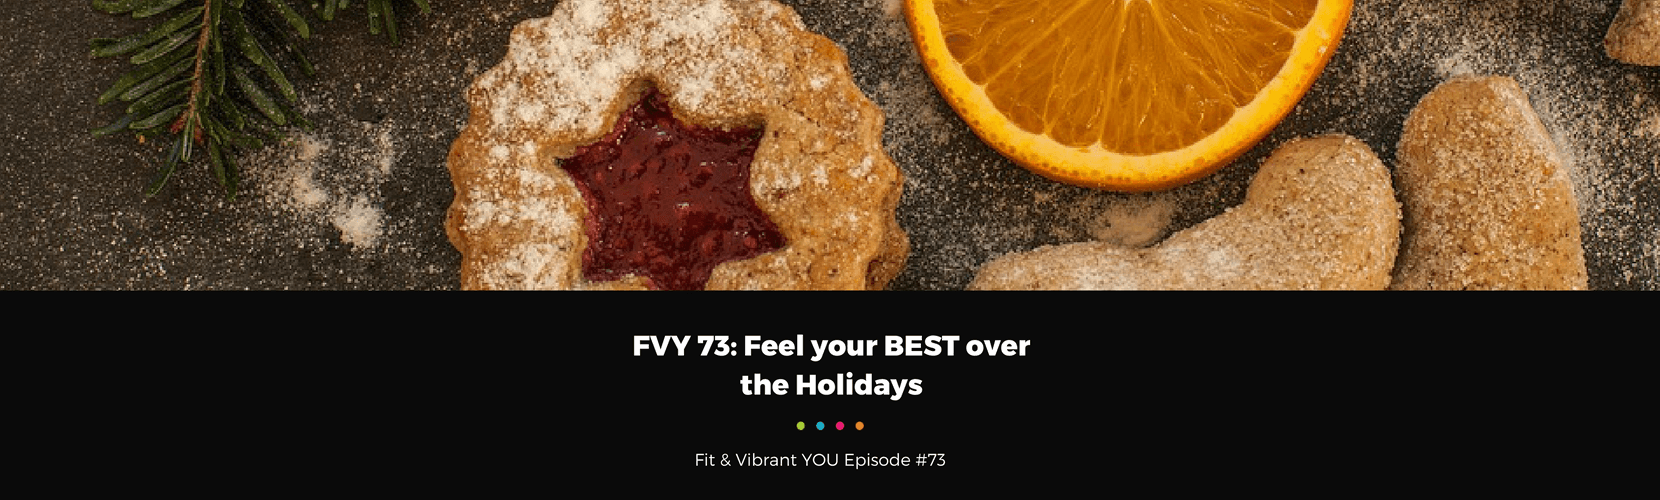 FVY 73: Feel your BEST over the Holidays